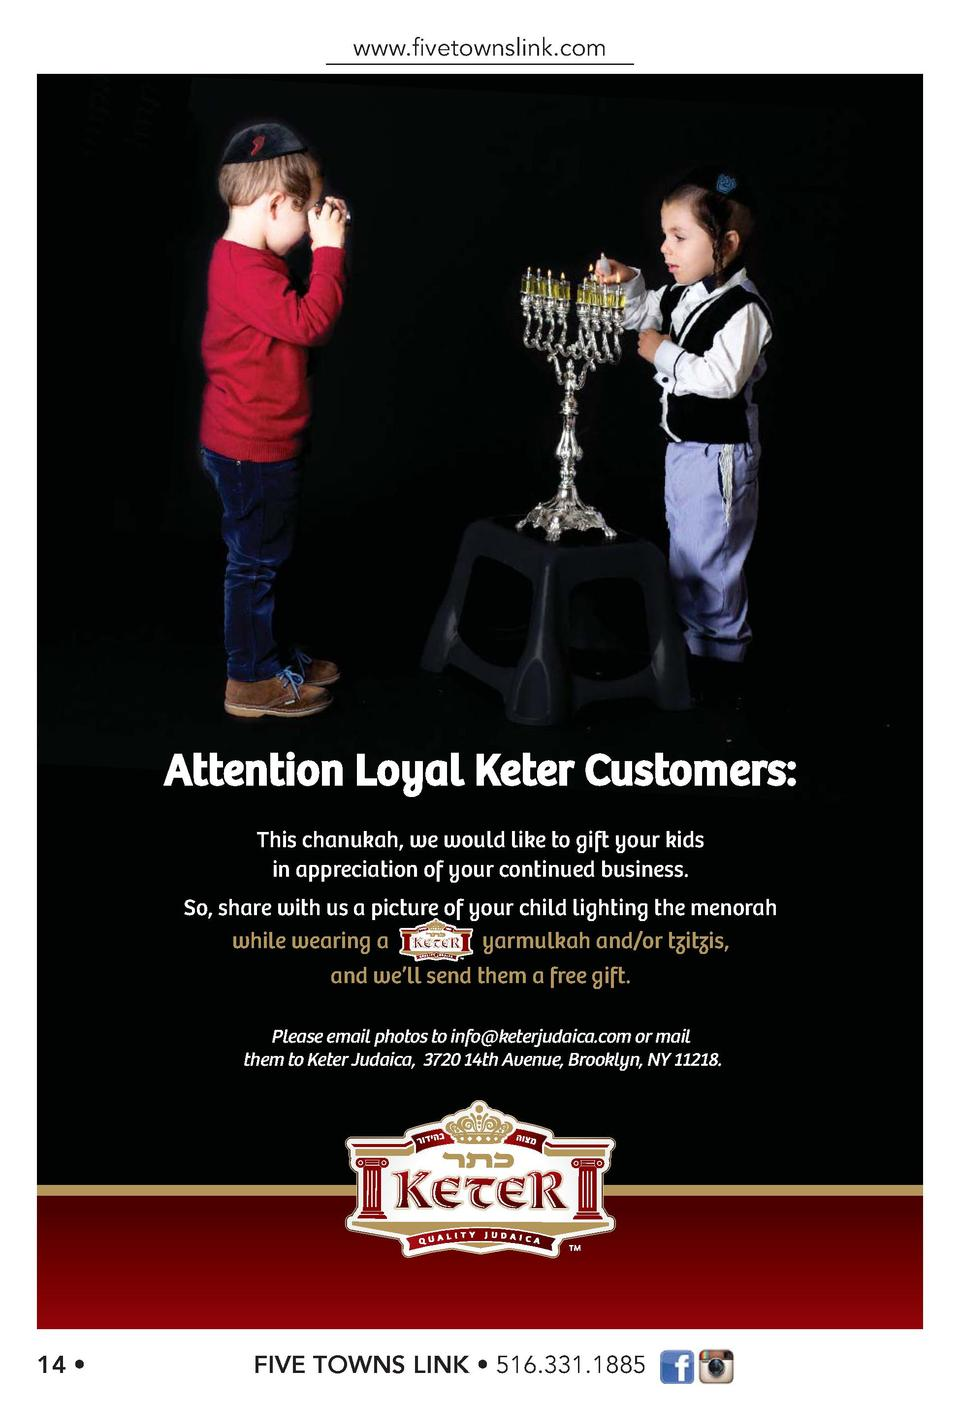 www.   vetownslink.com  Attention Loyal Keter Customers  This chanukah, we would like to gift your kids in appreciation of...